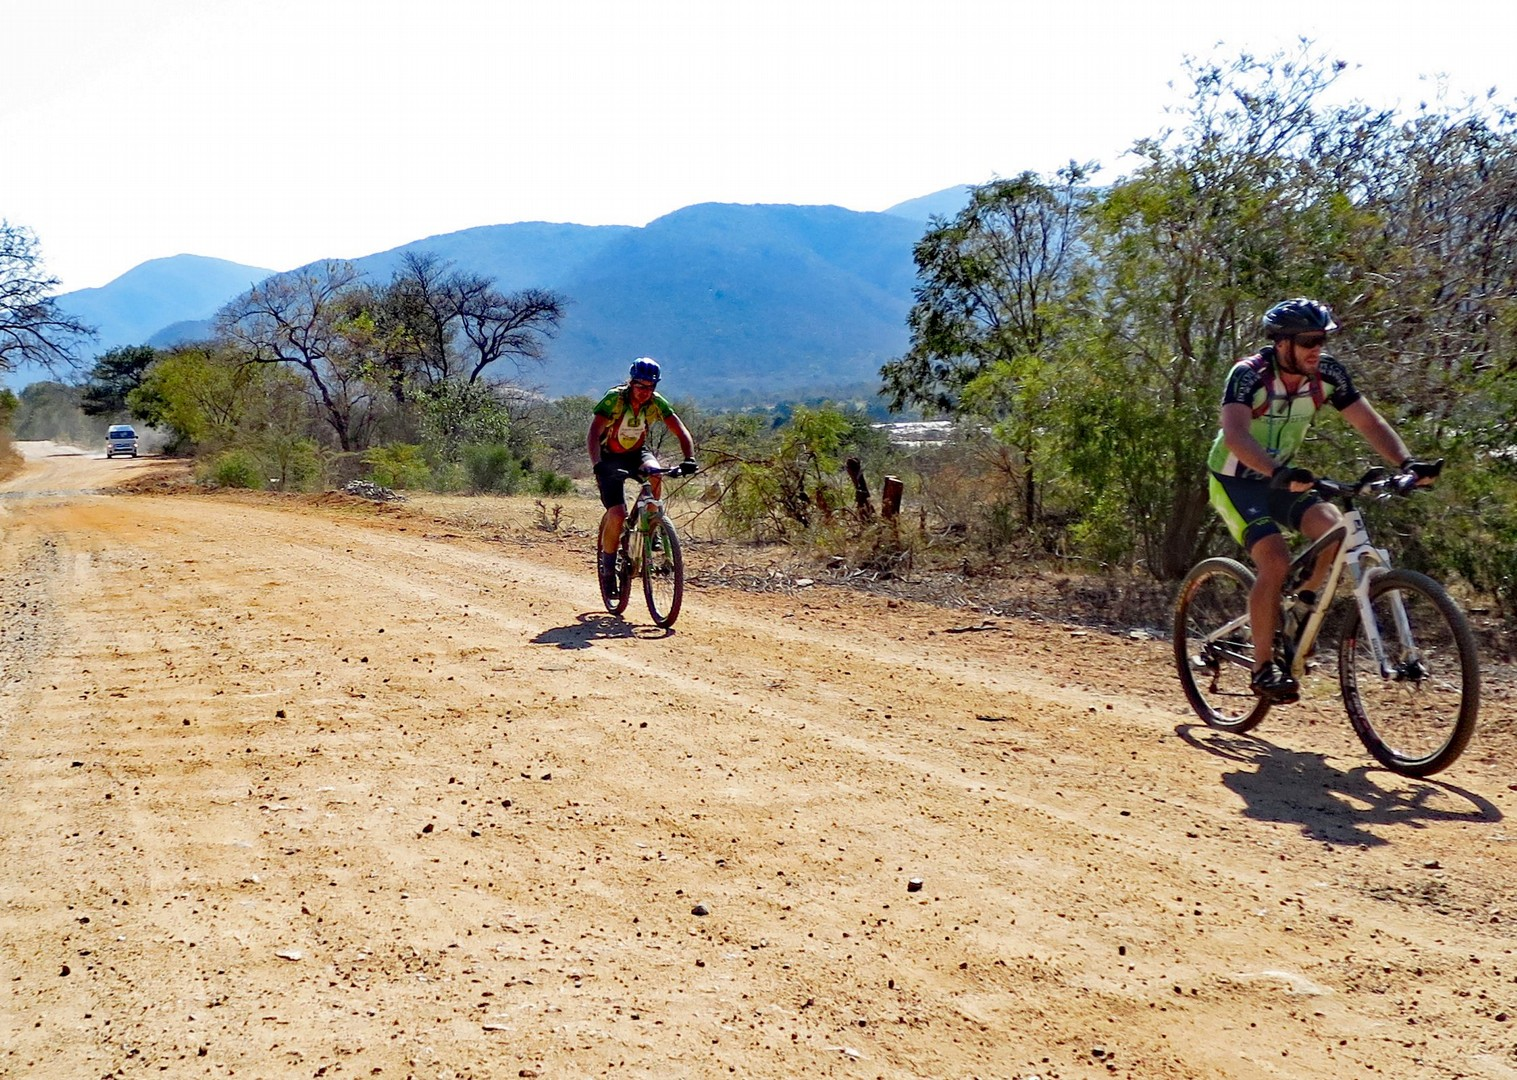 swaziland-mountain-bike-holiday-in-africa.jpg - Swaziland - Singletrack and Sundowners - Guided Mountain Bike Holiday - Mountain Biking